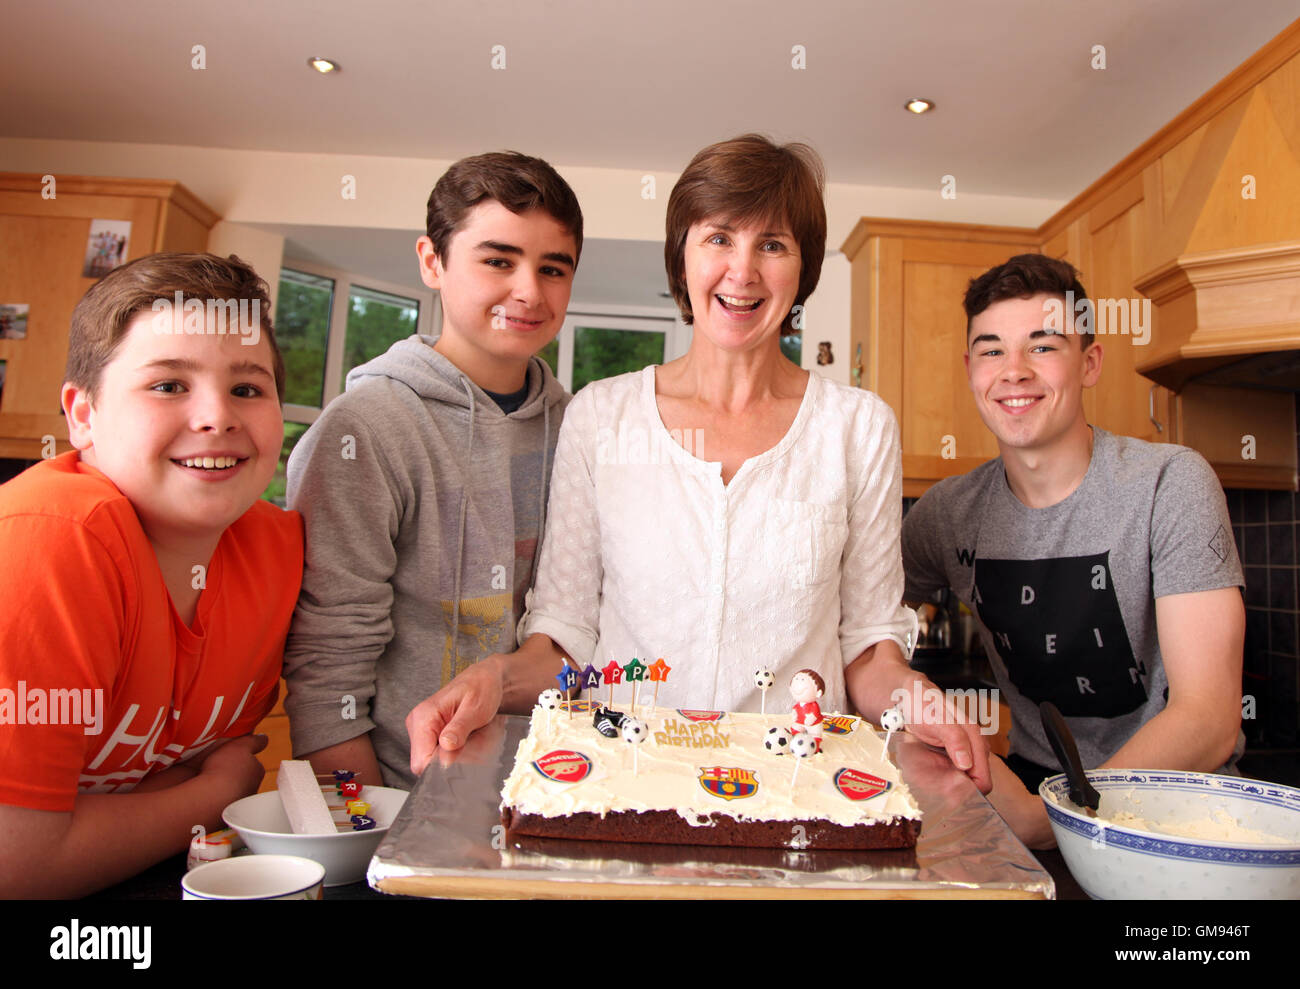 Family of home bakers - Stock Image